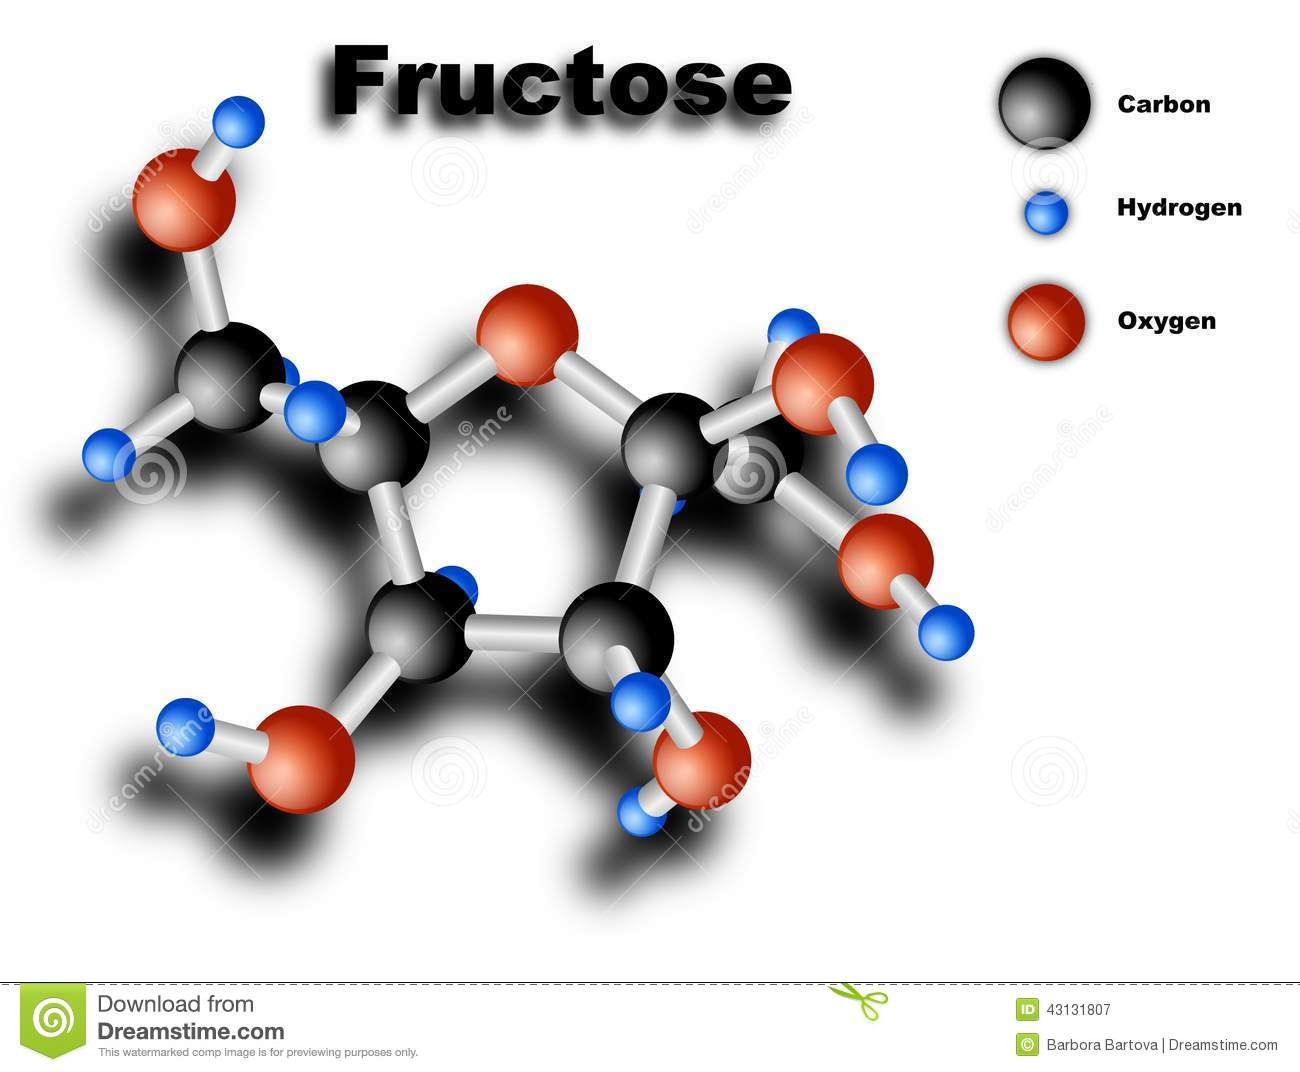 Fructose Molecule Stock Illustration - Image: 43131807